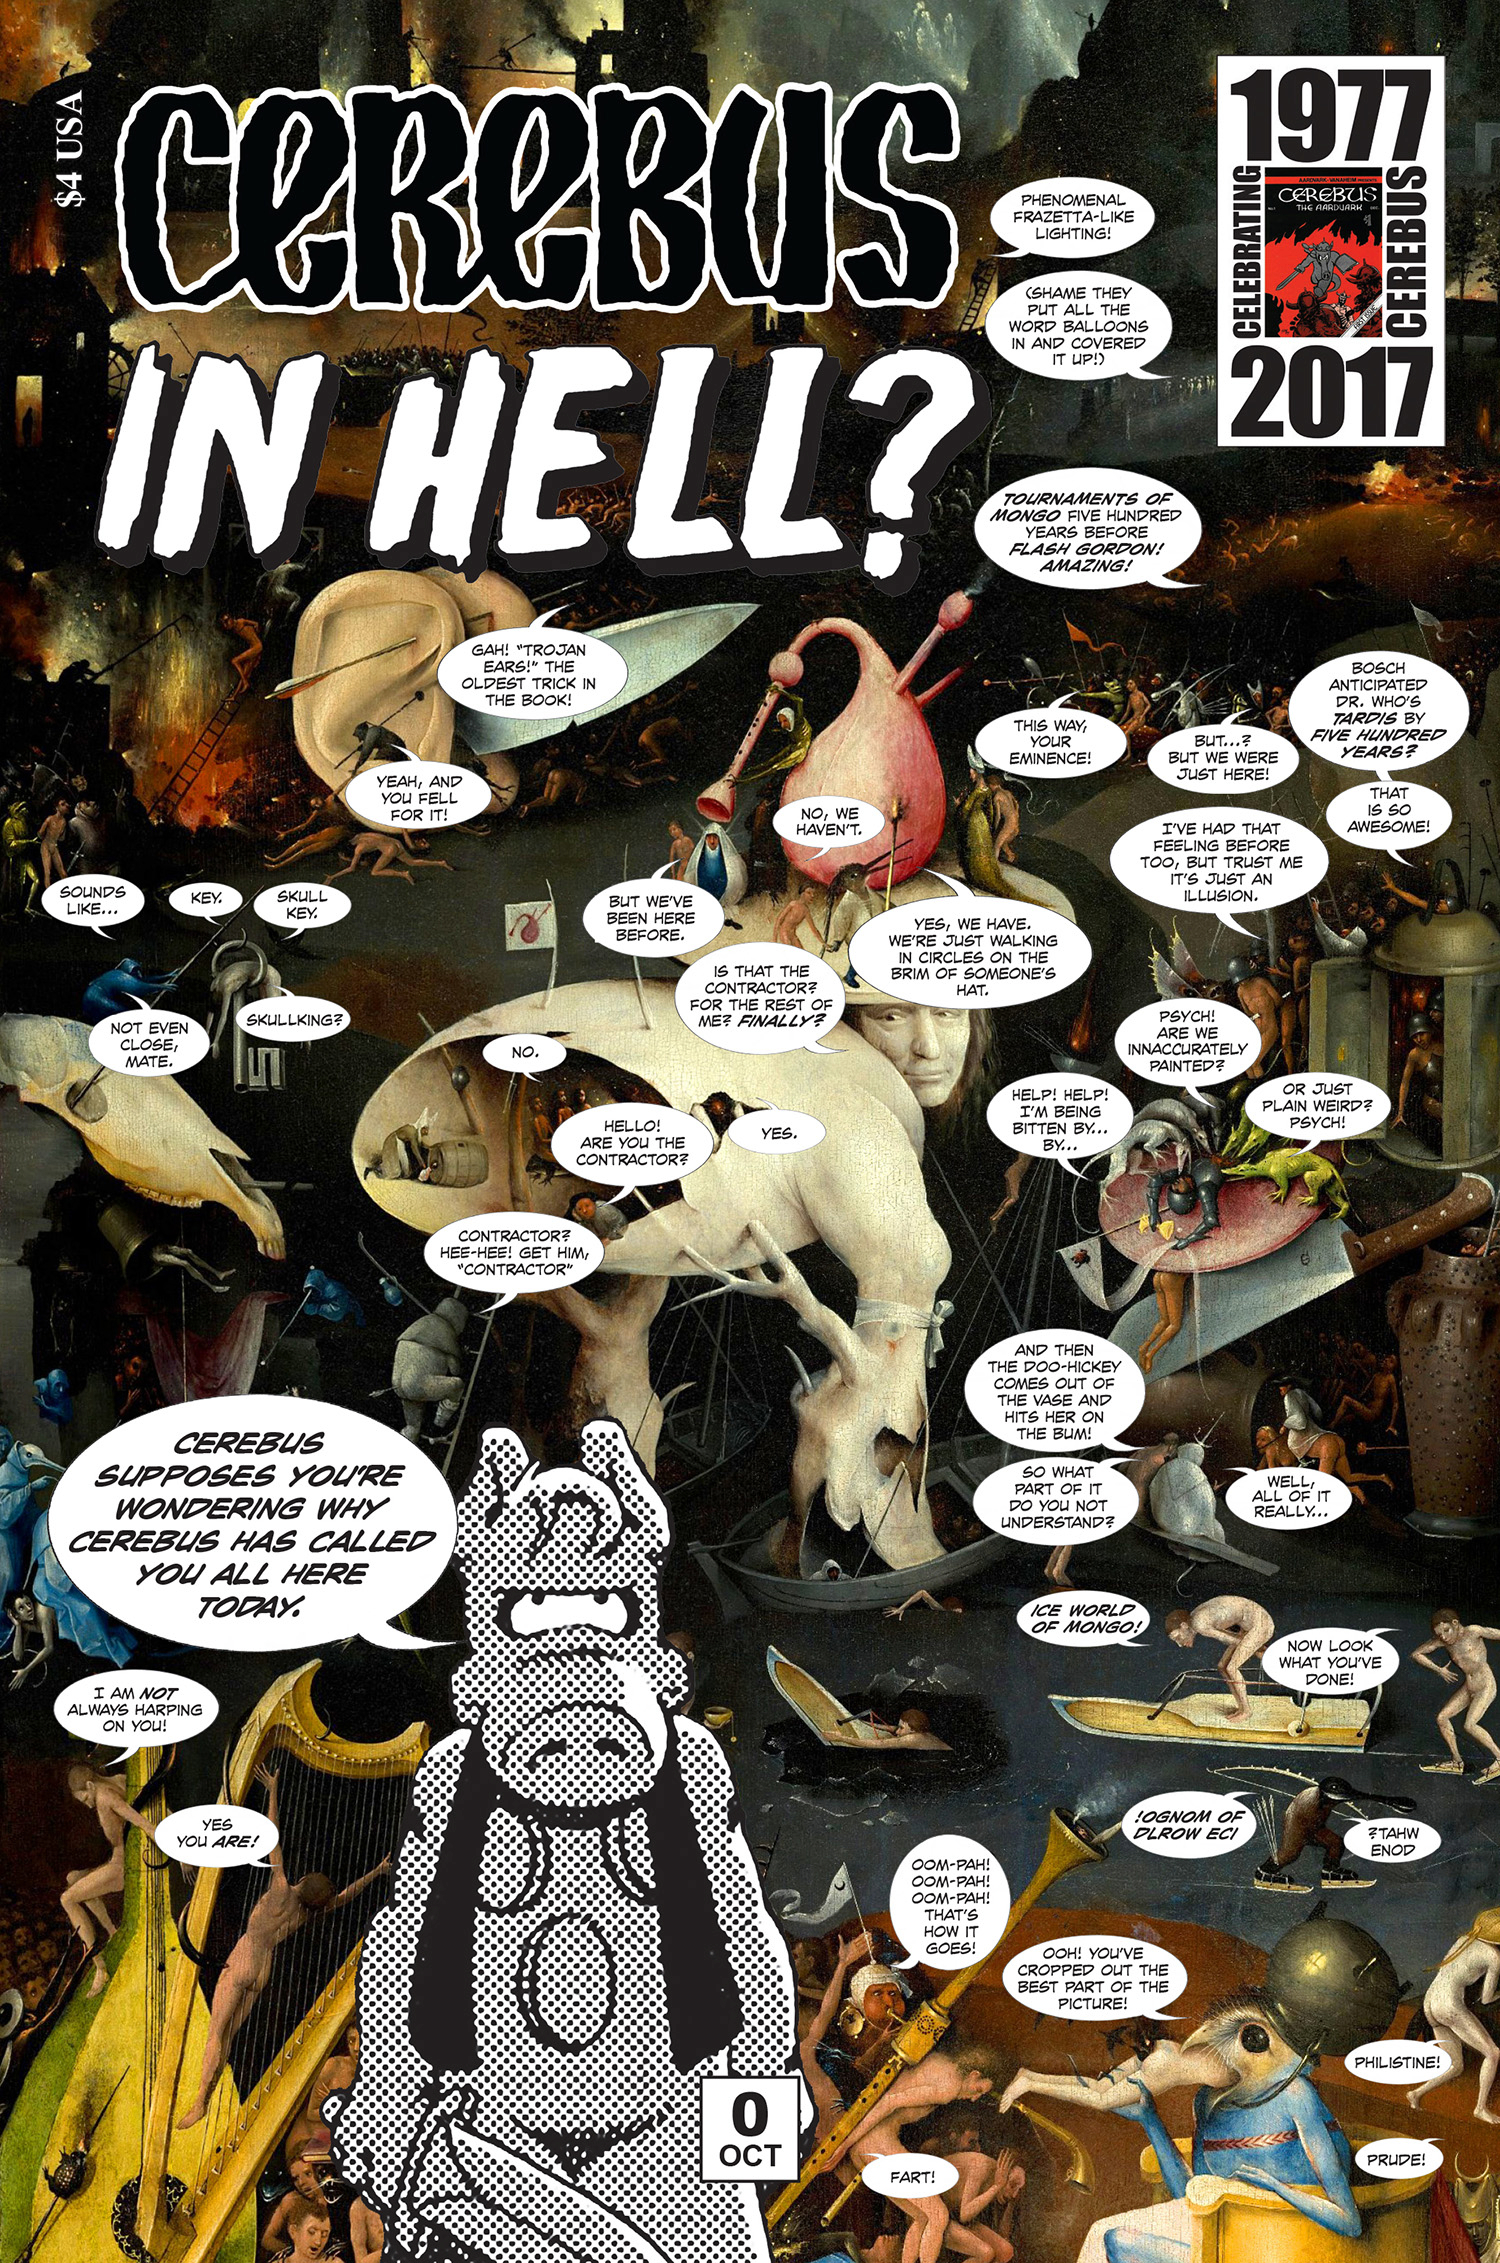 CEREBUS IN HELL #0